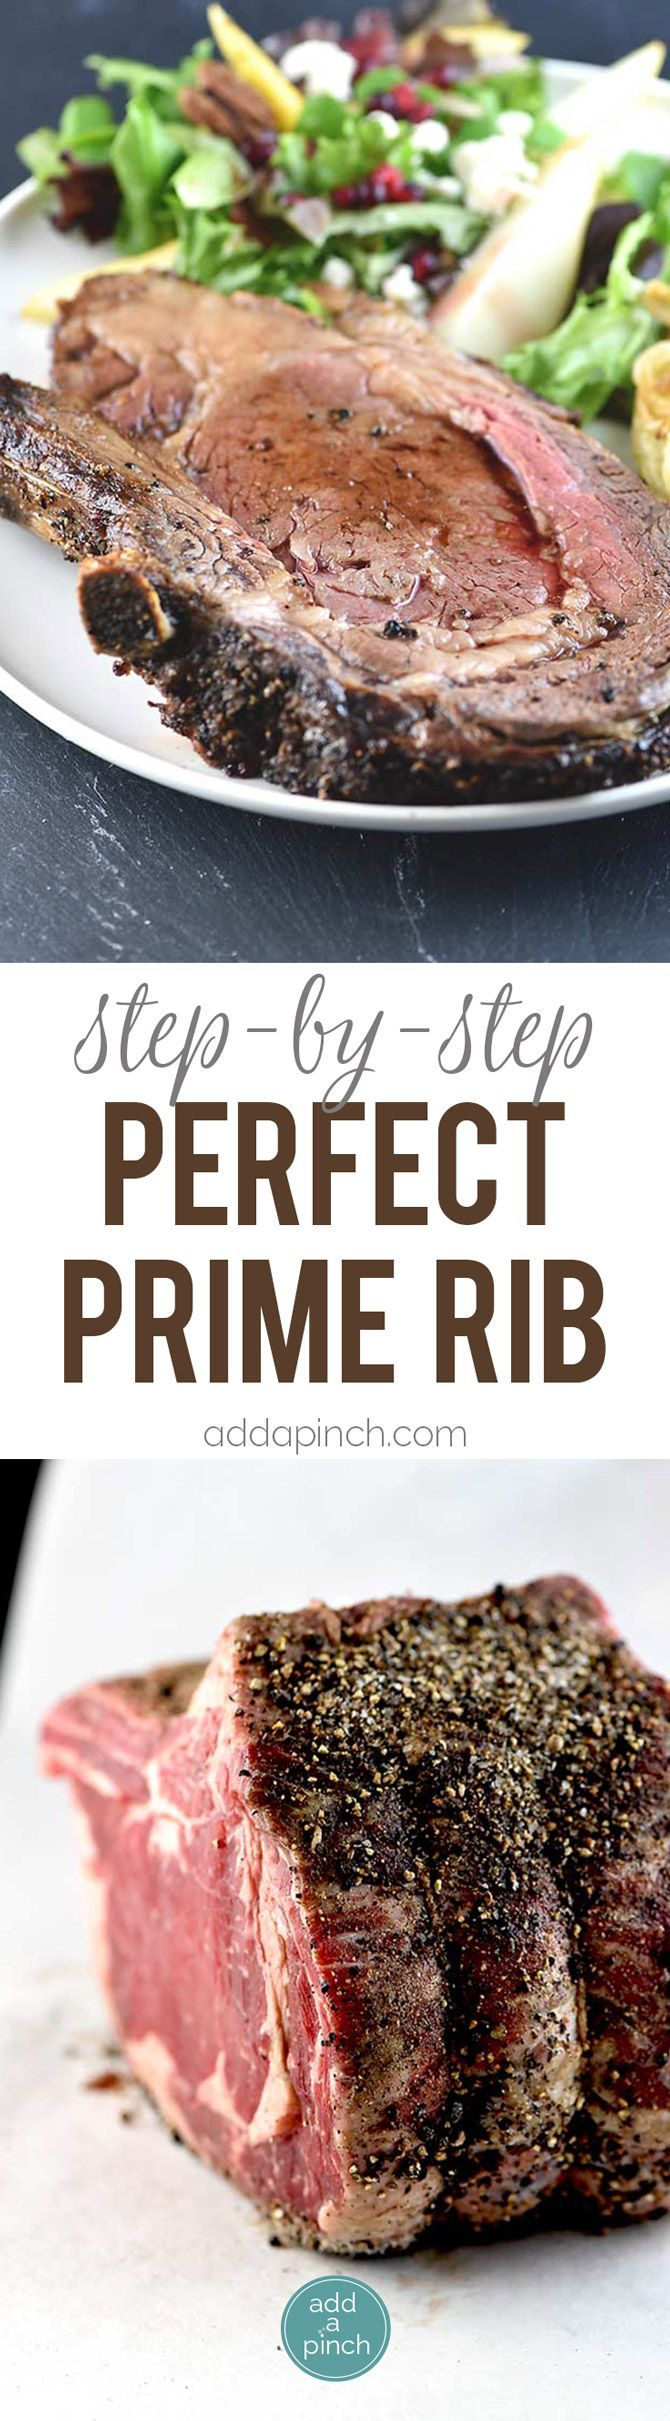 Perfect Prime Rib Recipe - This prime rib recipe results in the perfect prime rib every time. Perfect for the holidays or special occasions.